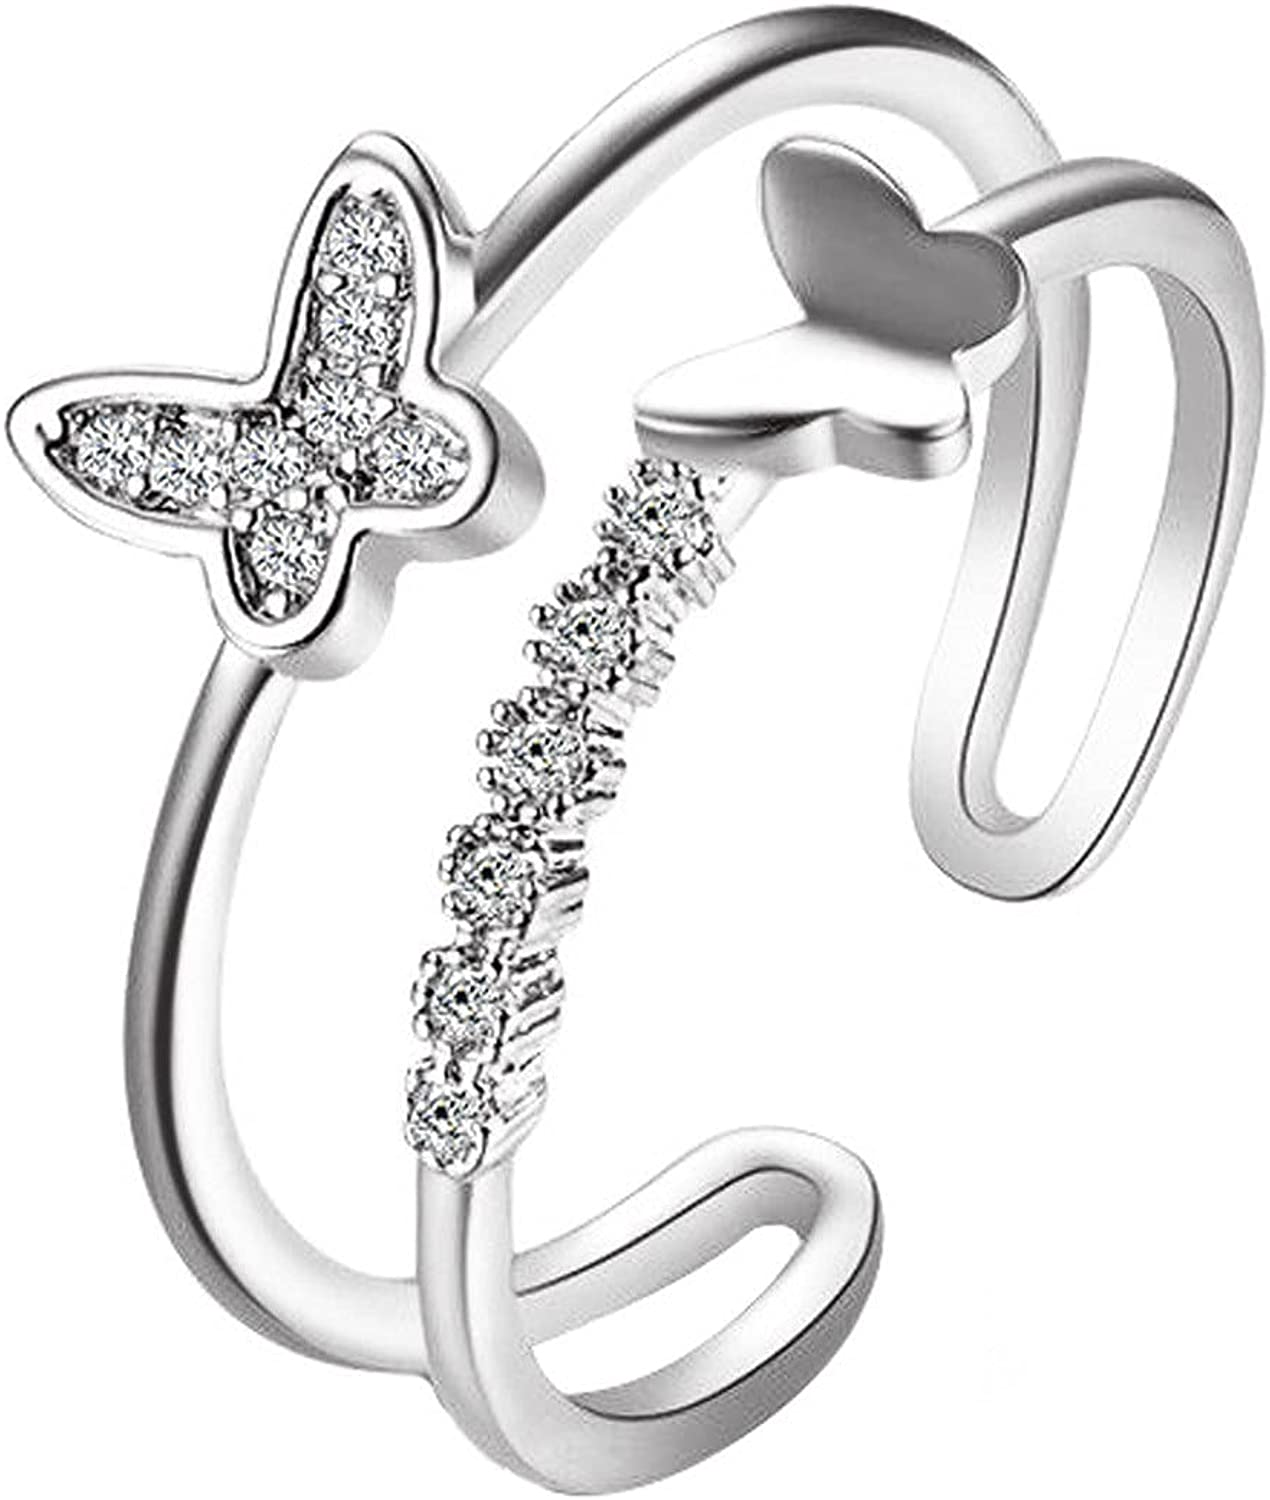 ksowam Butterfly Max 69% OFF Adjustable Free shipping on posting reviews Open Band Women for 925 Sterli Ring